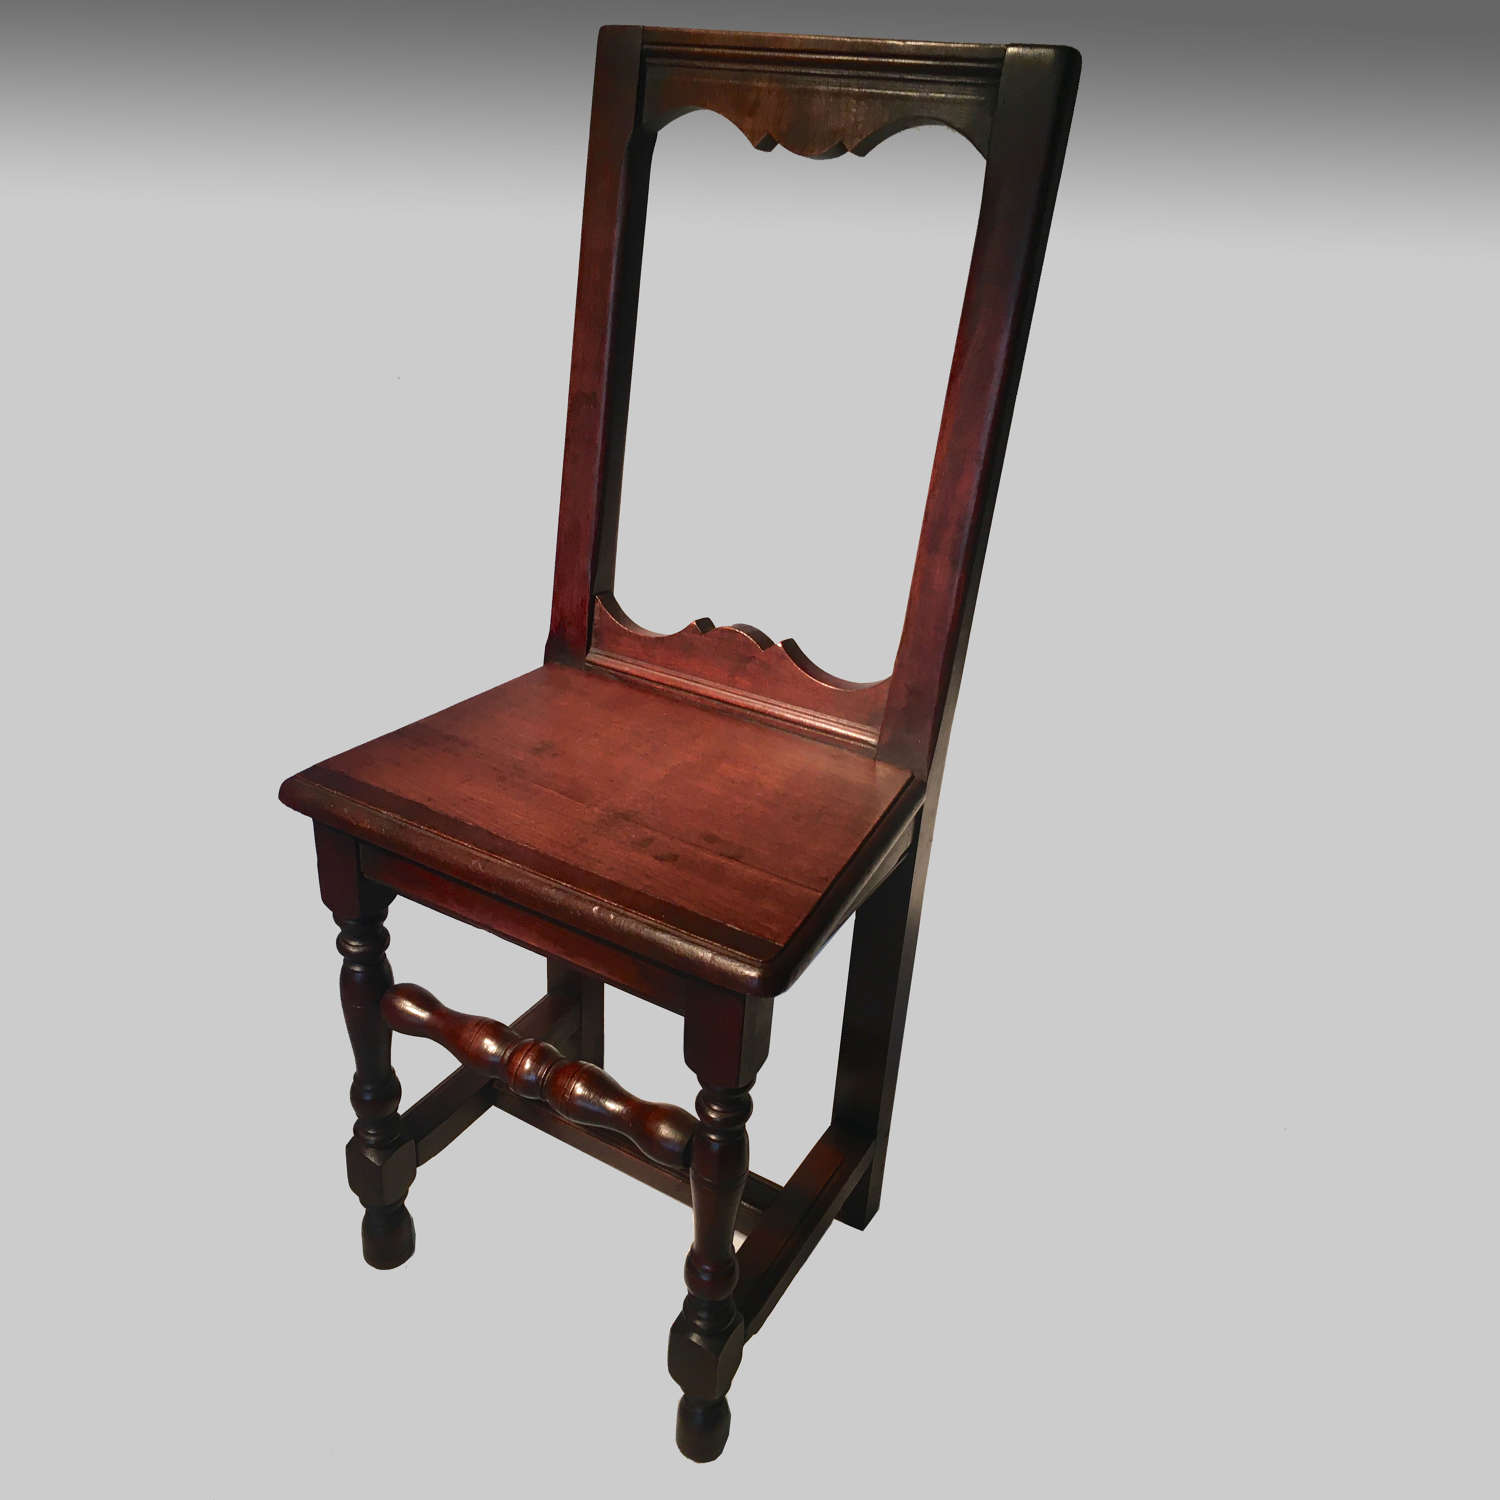 French fruitwood Lorraine child's chair